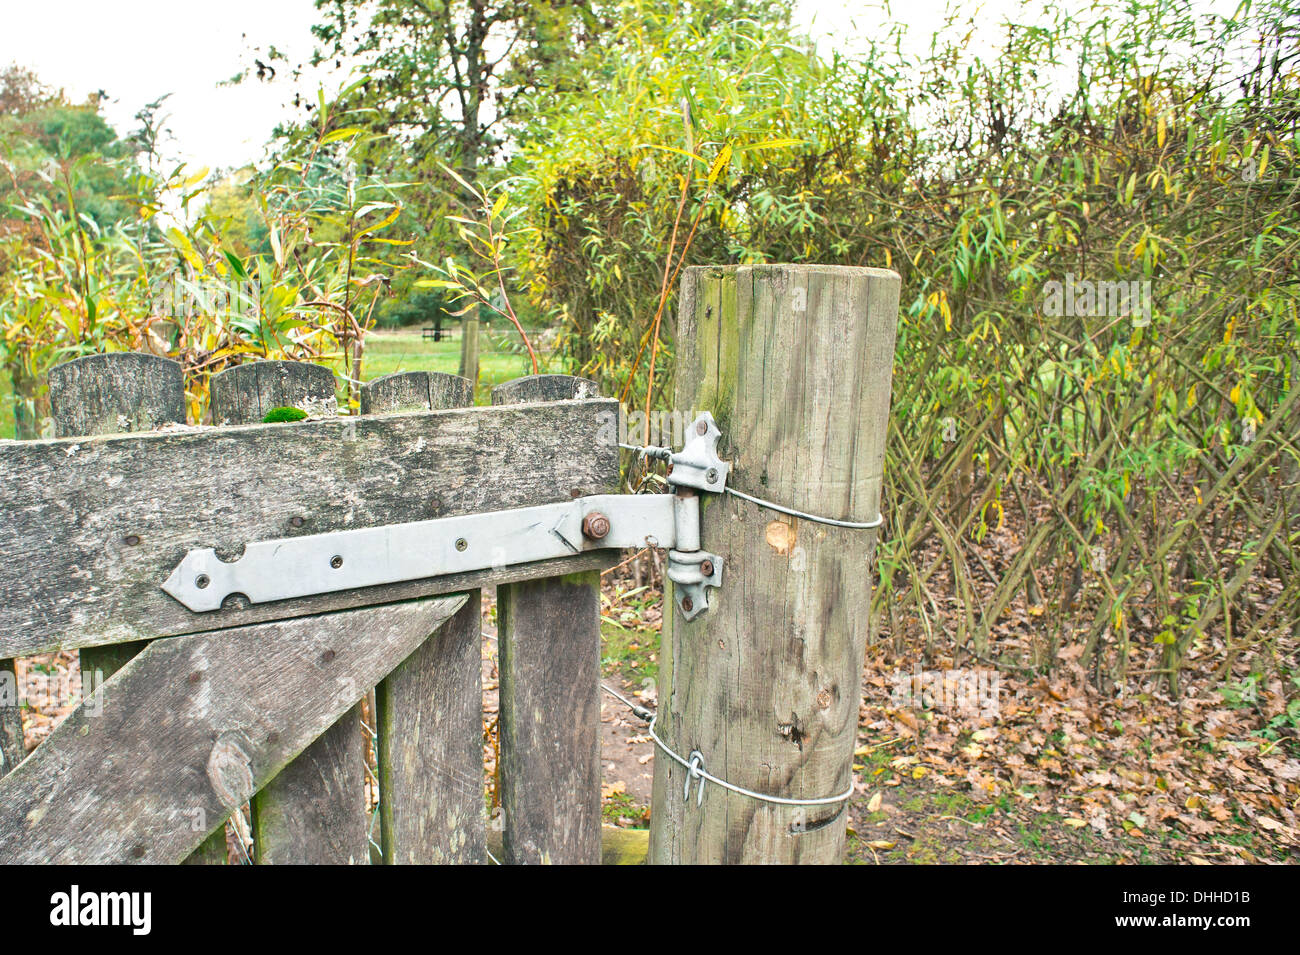 Old gate in a rural woodland setting - Stock Image